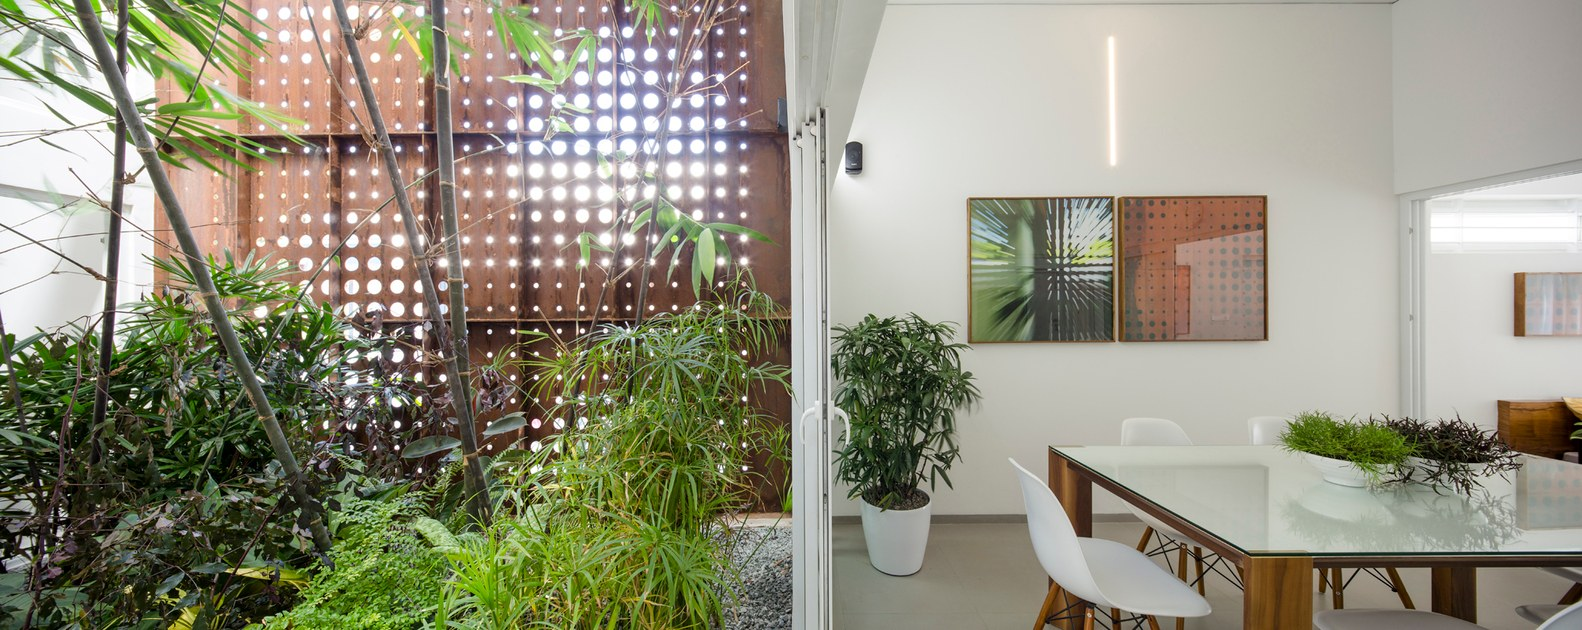 Atrium Design And Decoration Of A Gorgeous Home Split By A Covered Garden Atrium